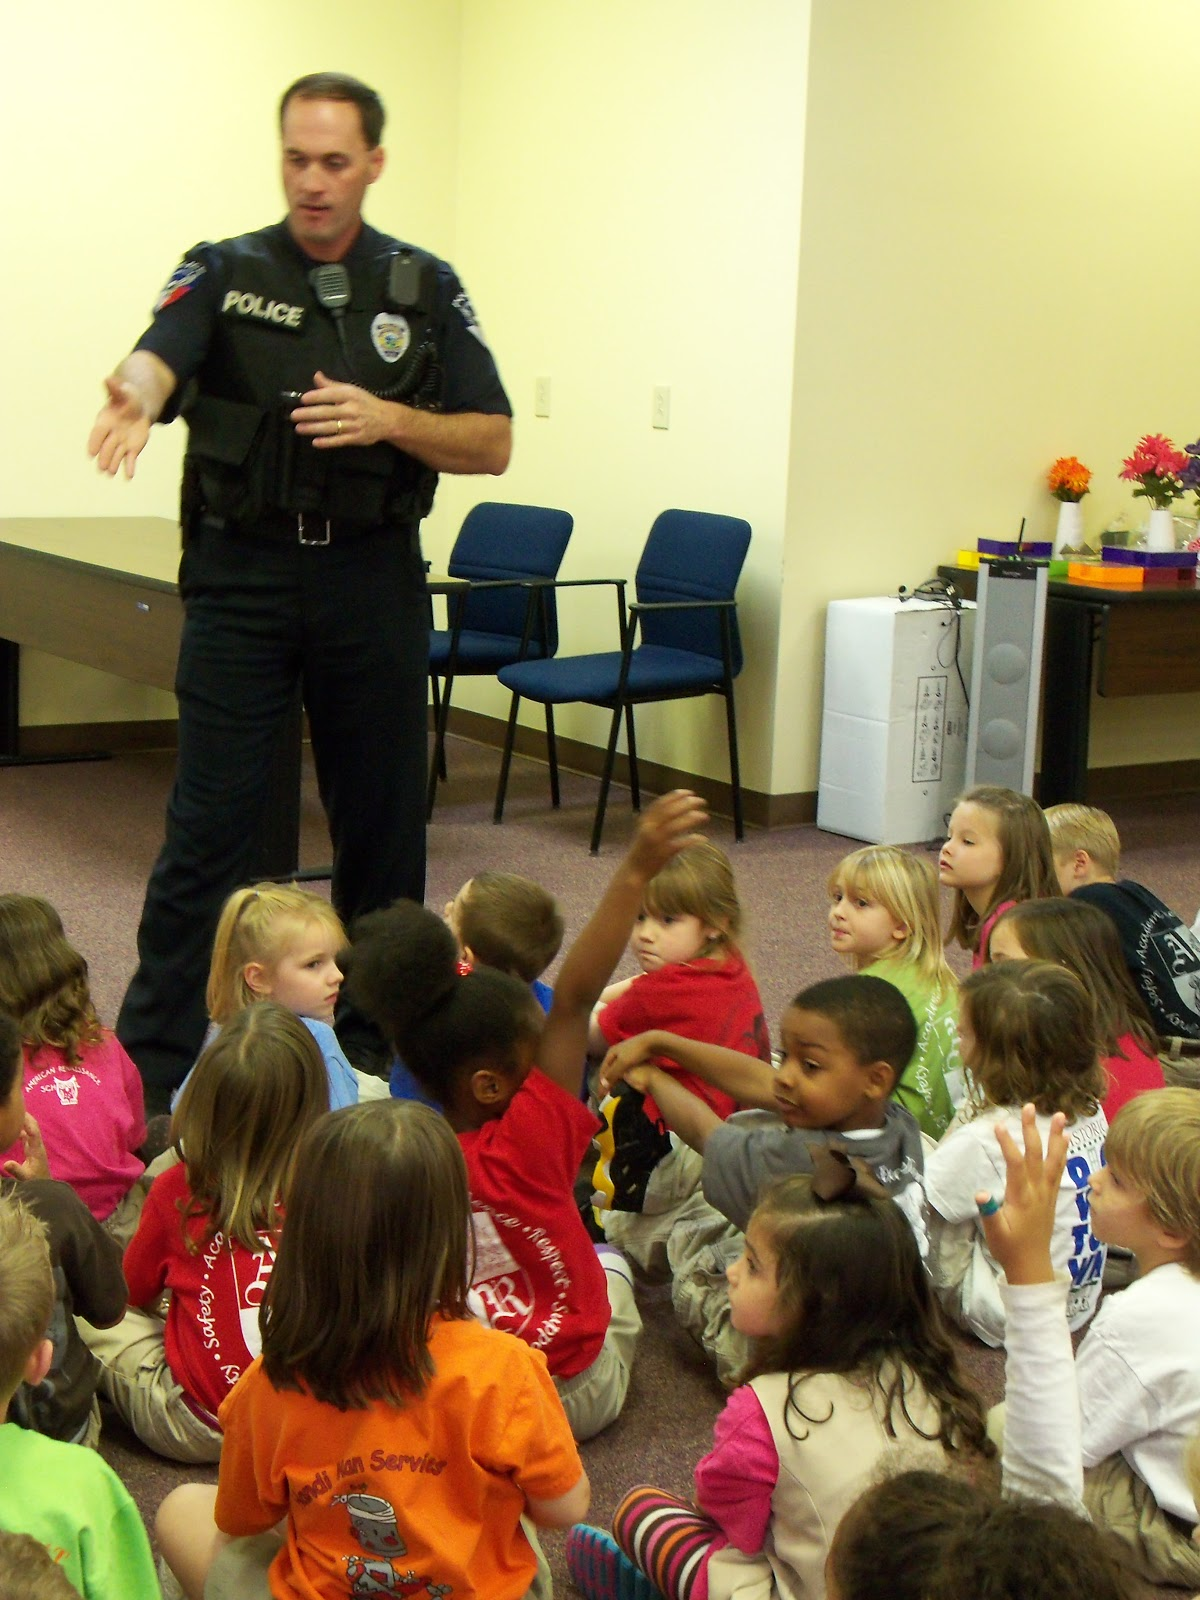 questions to ask a police officer about his job pima county ...